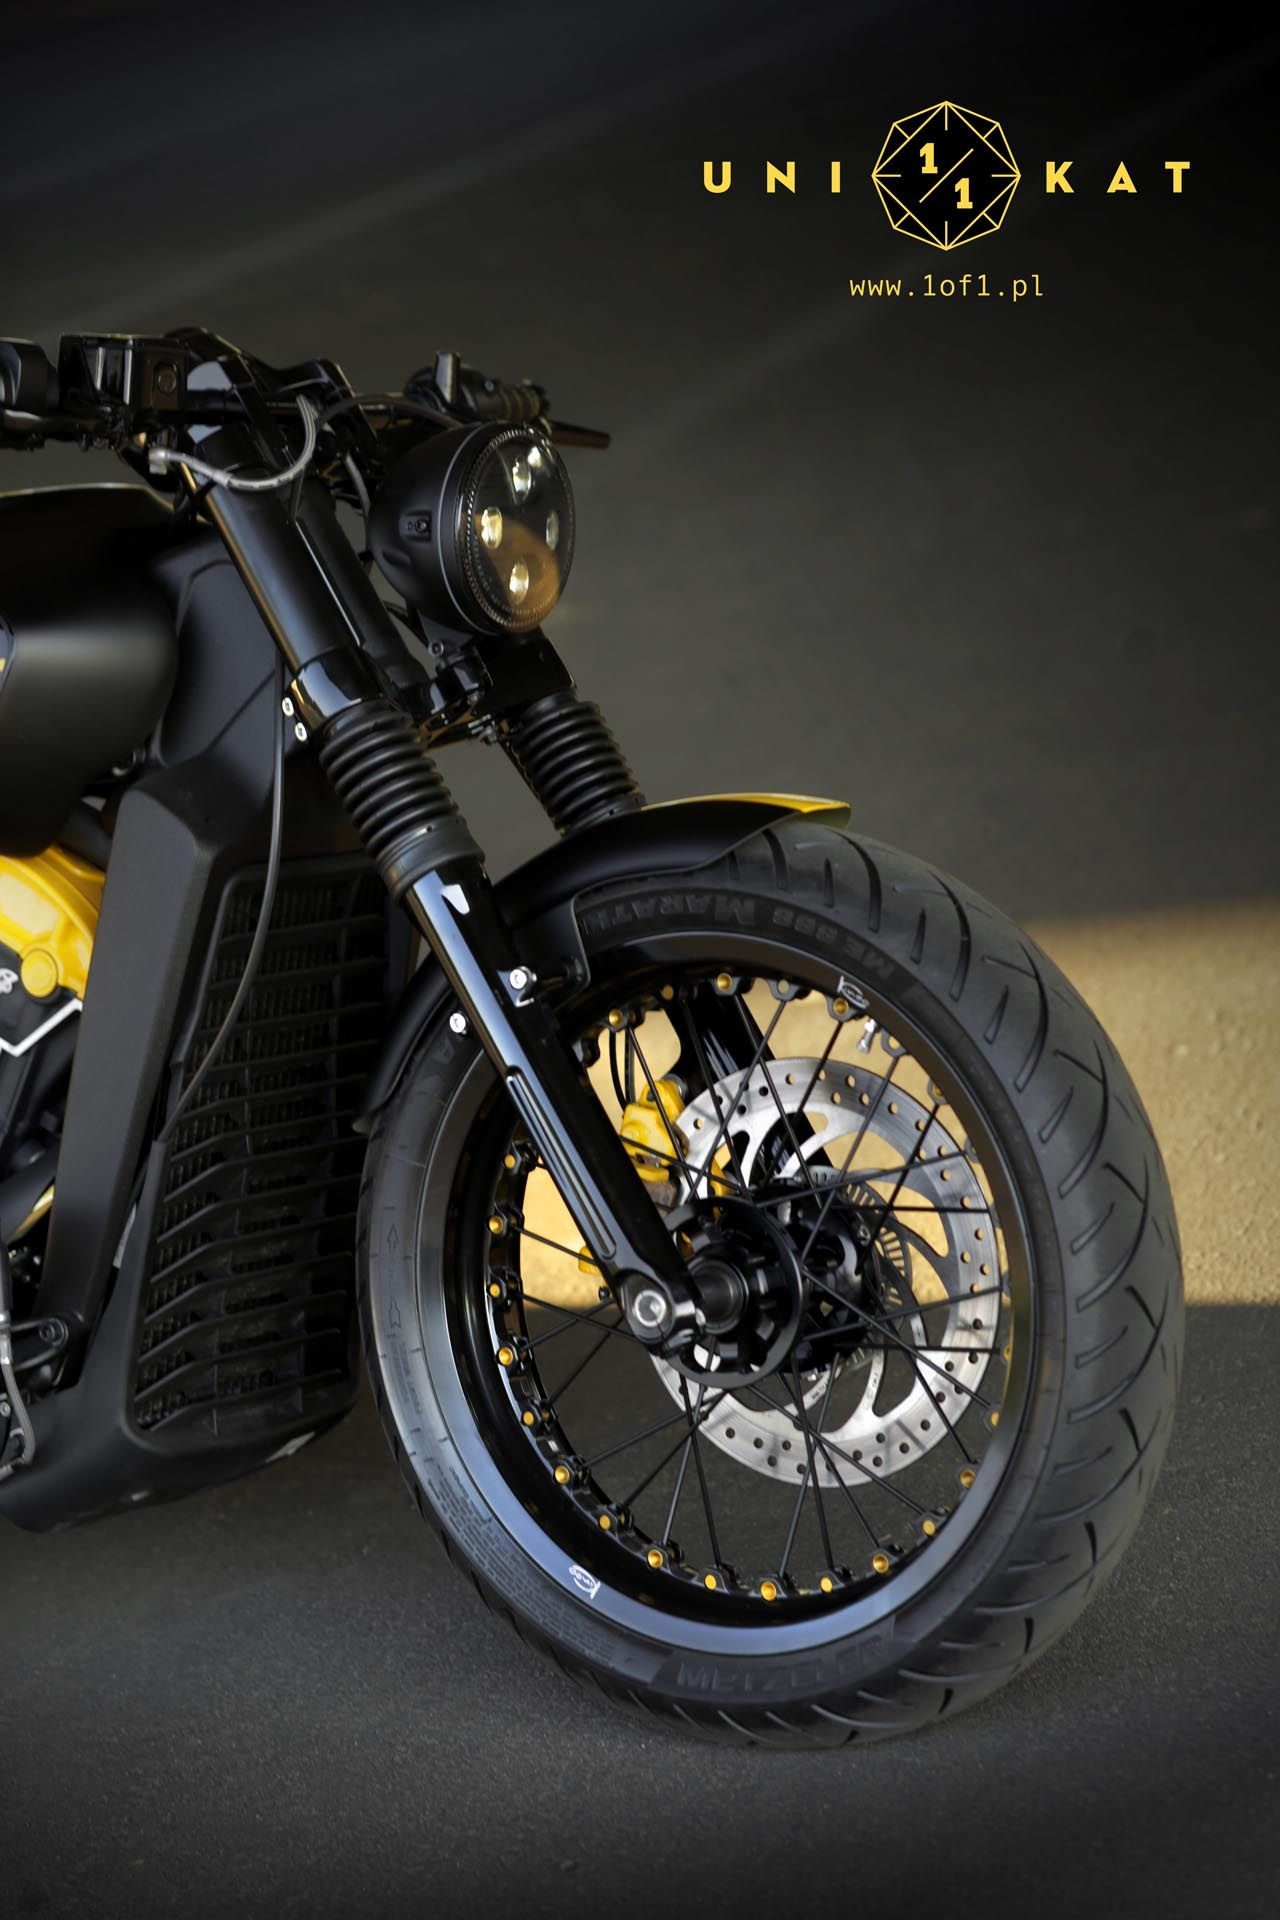 Indian Scout Bobber Never Off Indian Scout Indian Motorcycle Scout Indian Scout Bike [ 1920 x 1280 Pixel ]